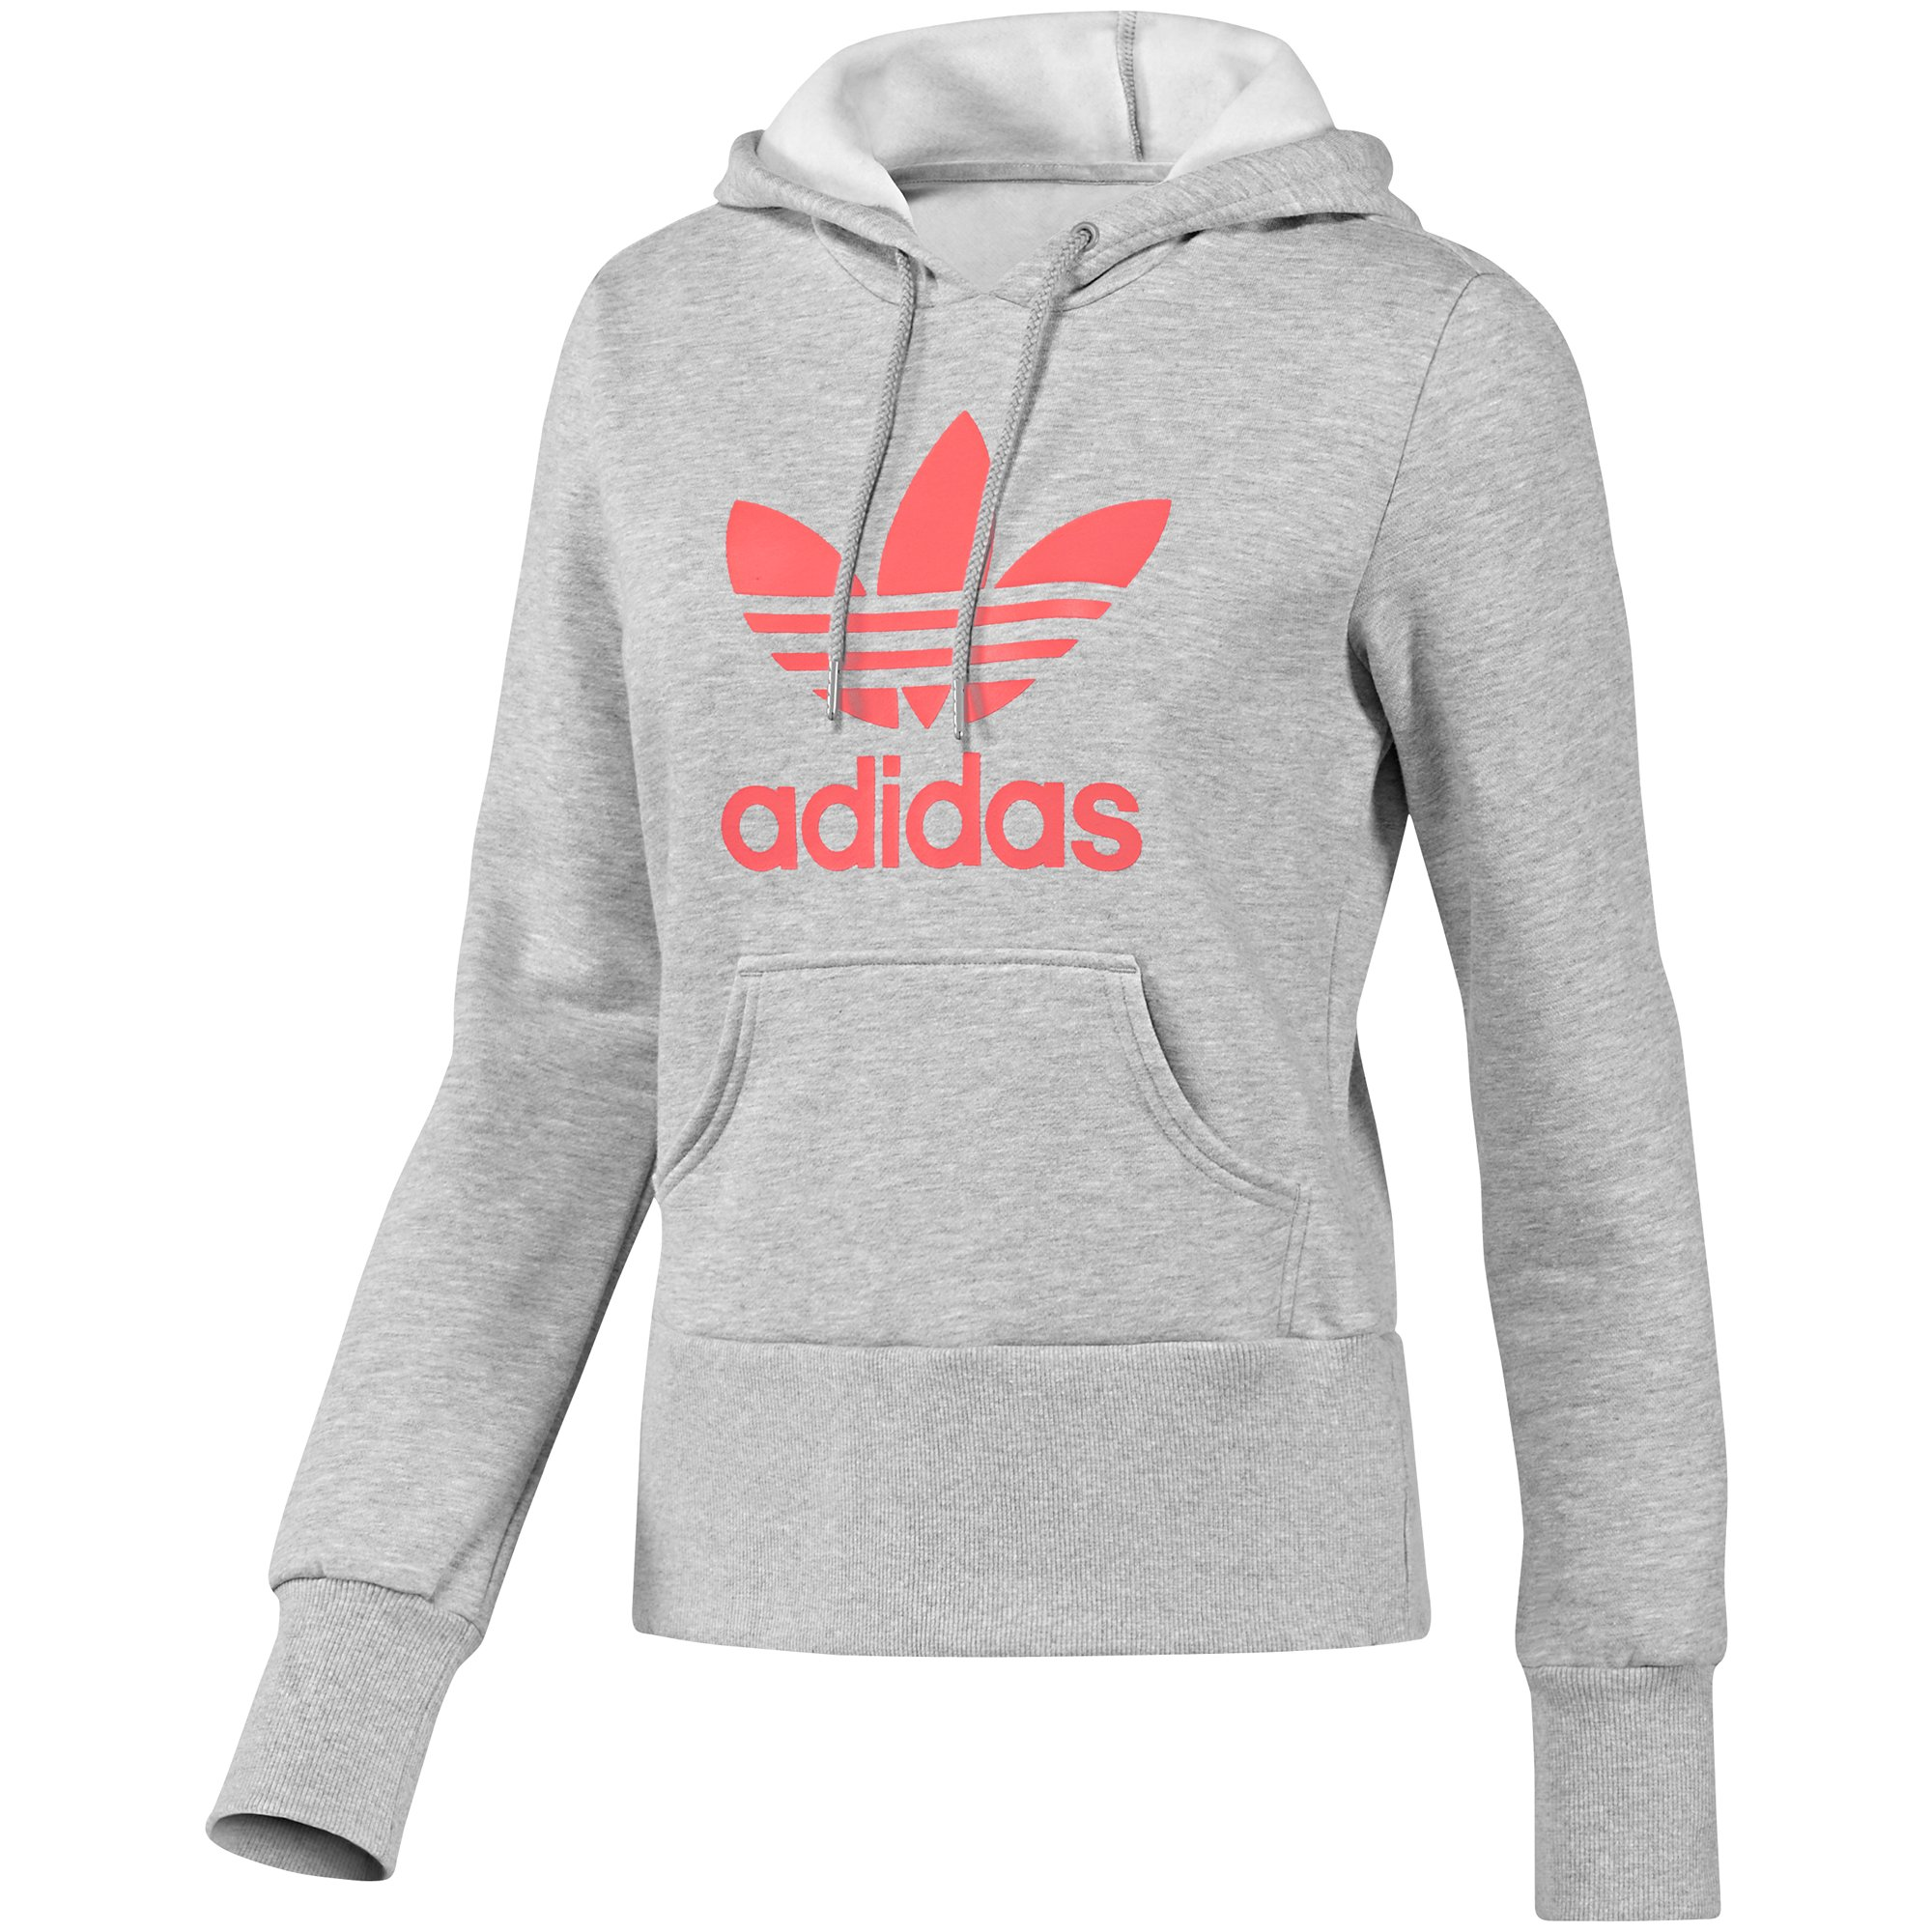 adidas trefoil hoodie w pullover sweatshirt. Black Bedroom Furniture Sets. Home Design Ideas